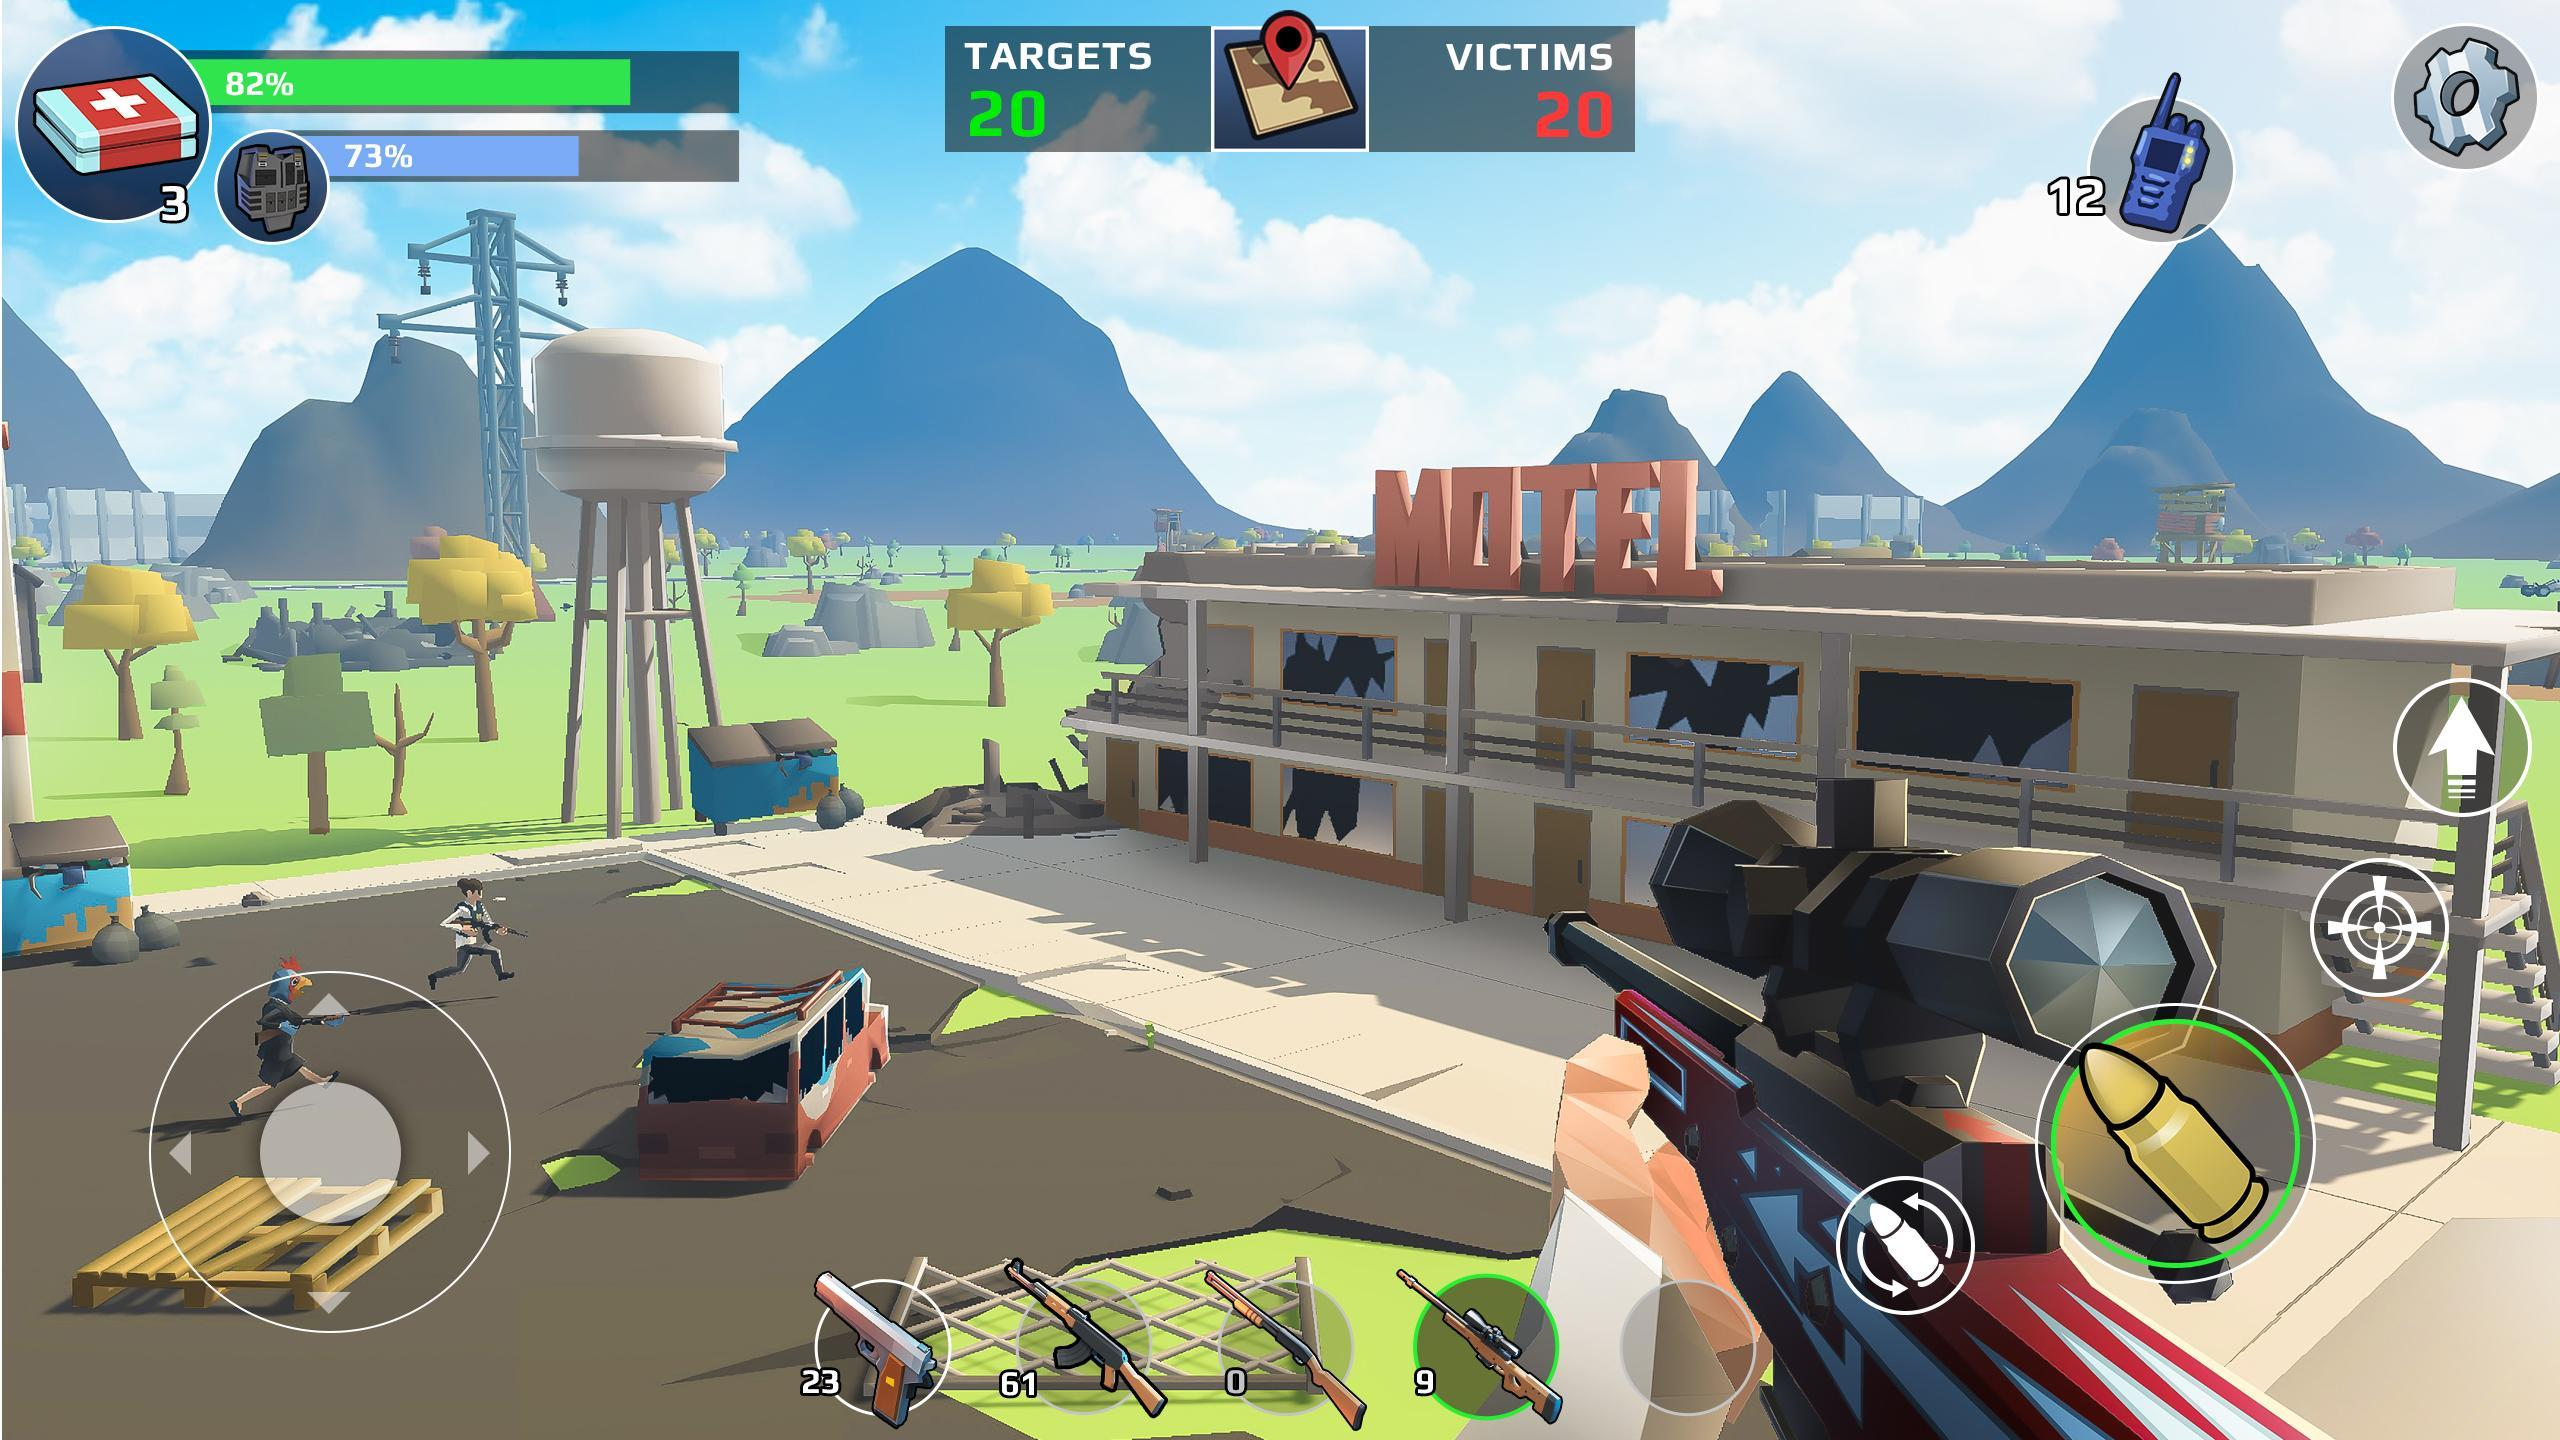 Battle Royale - The FPS Shooter